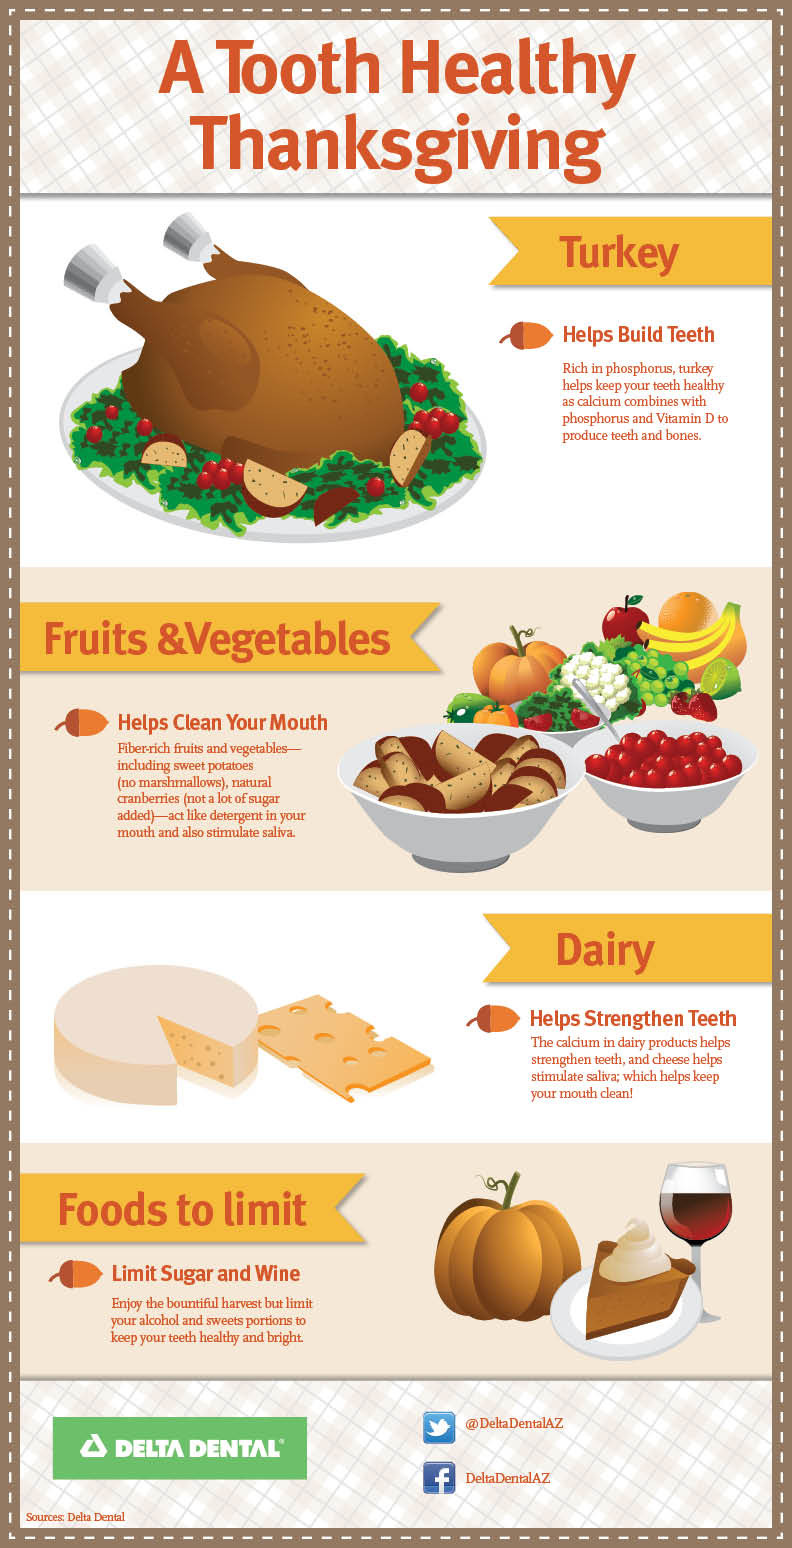 Healthy Thanksgiving Tips  A Tooth Healthy Thanksgiving